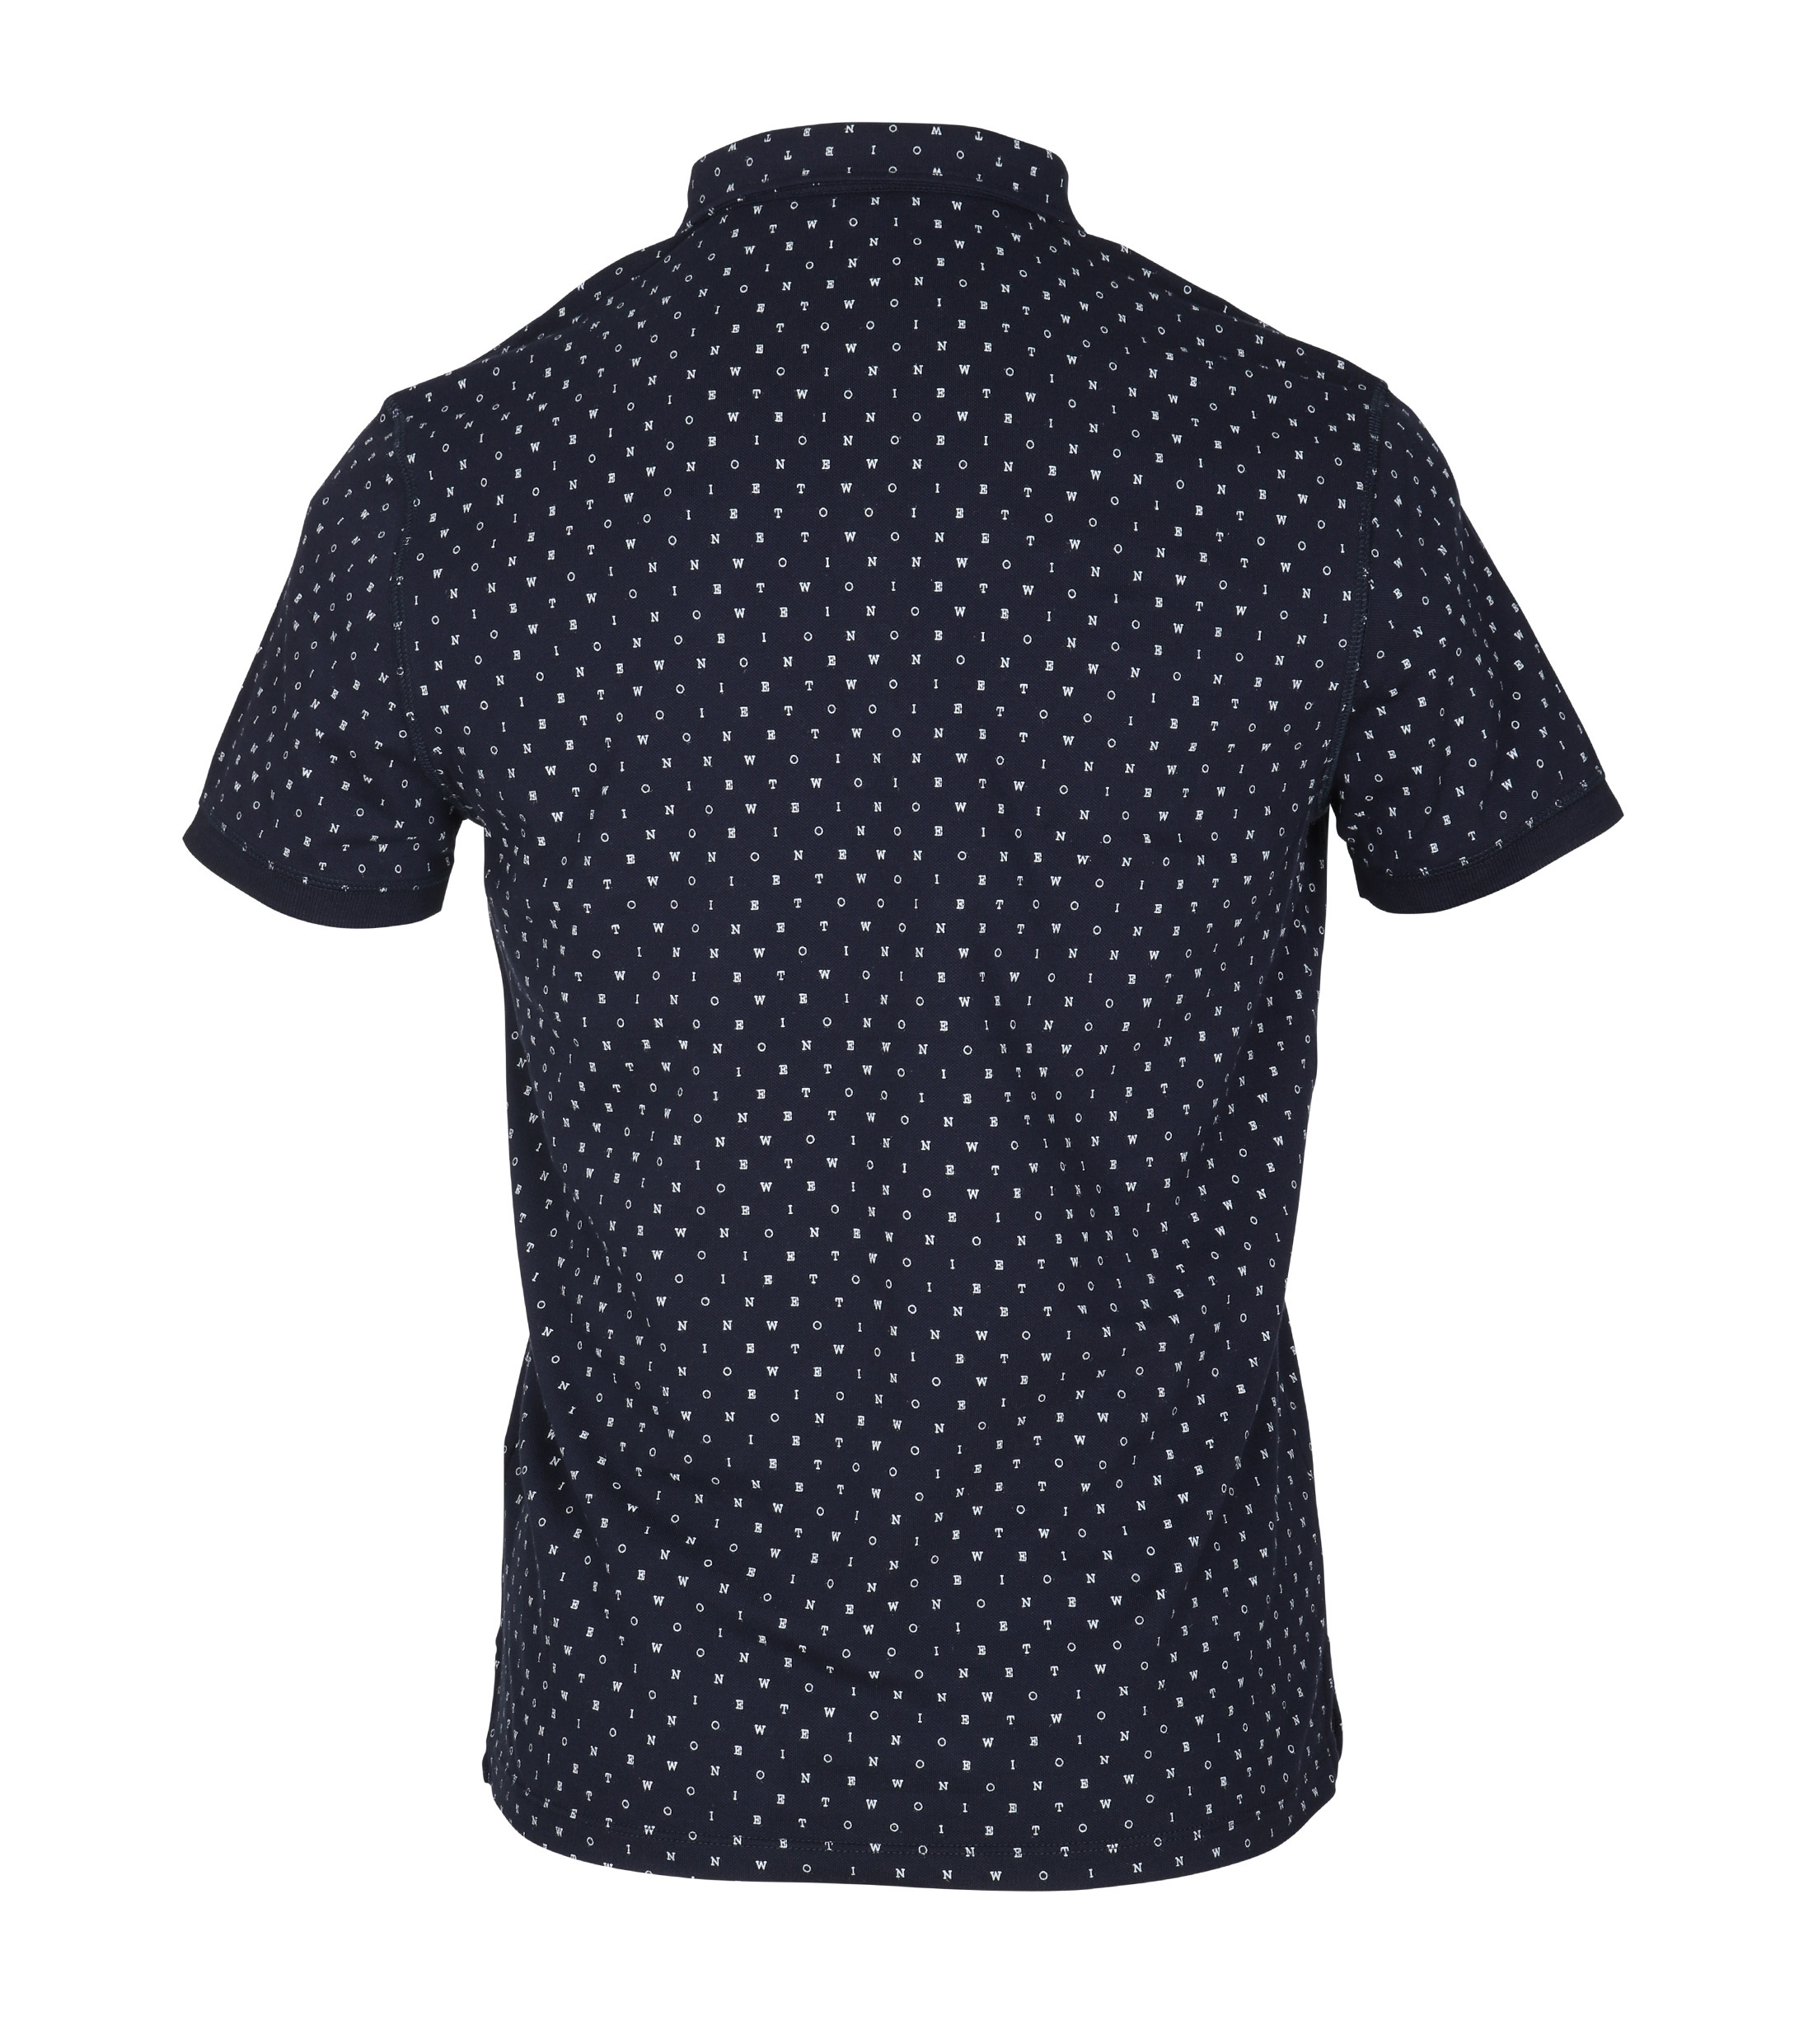 New In Town Polo Navy Tekst foto 3